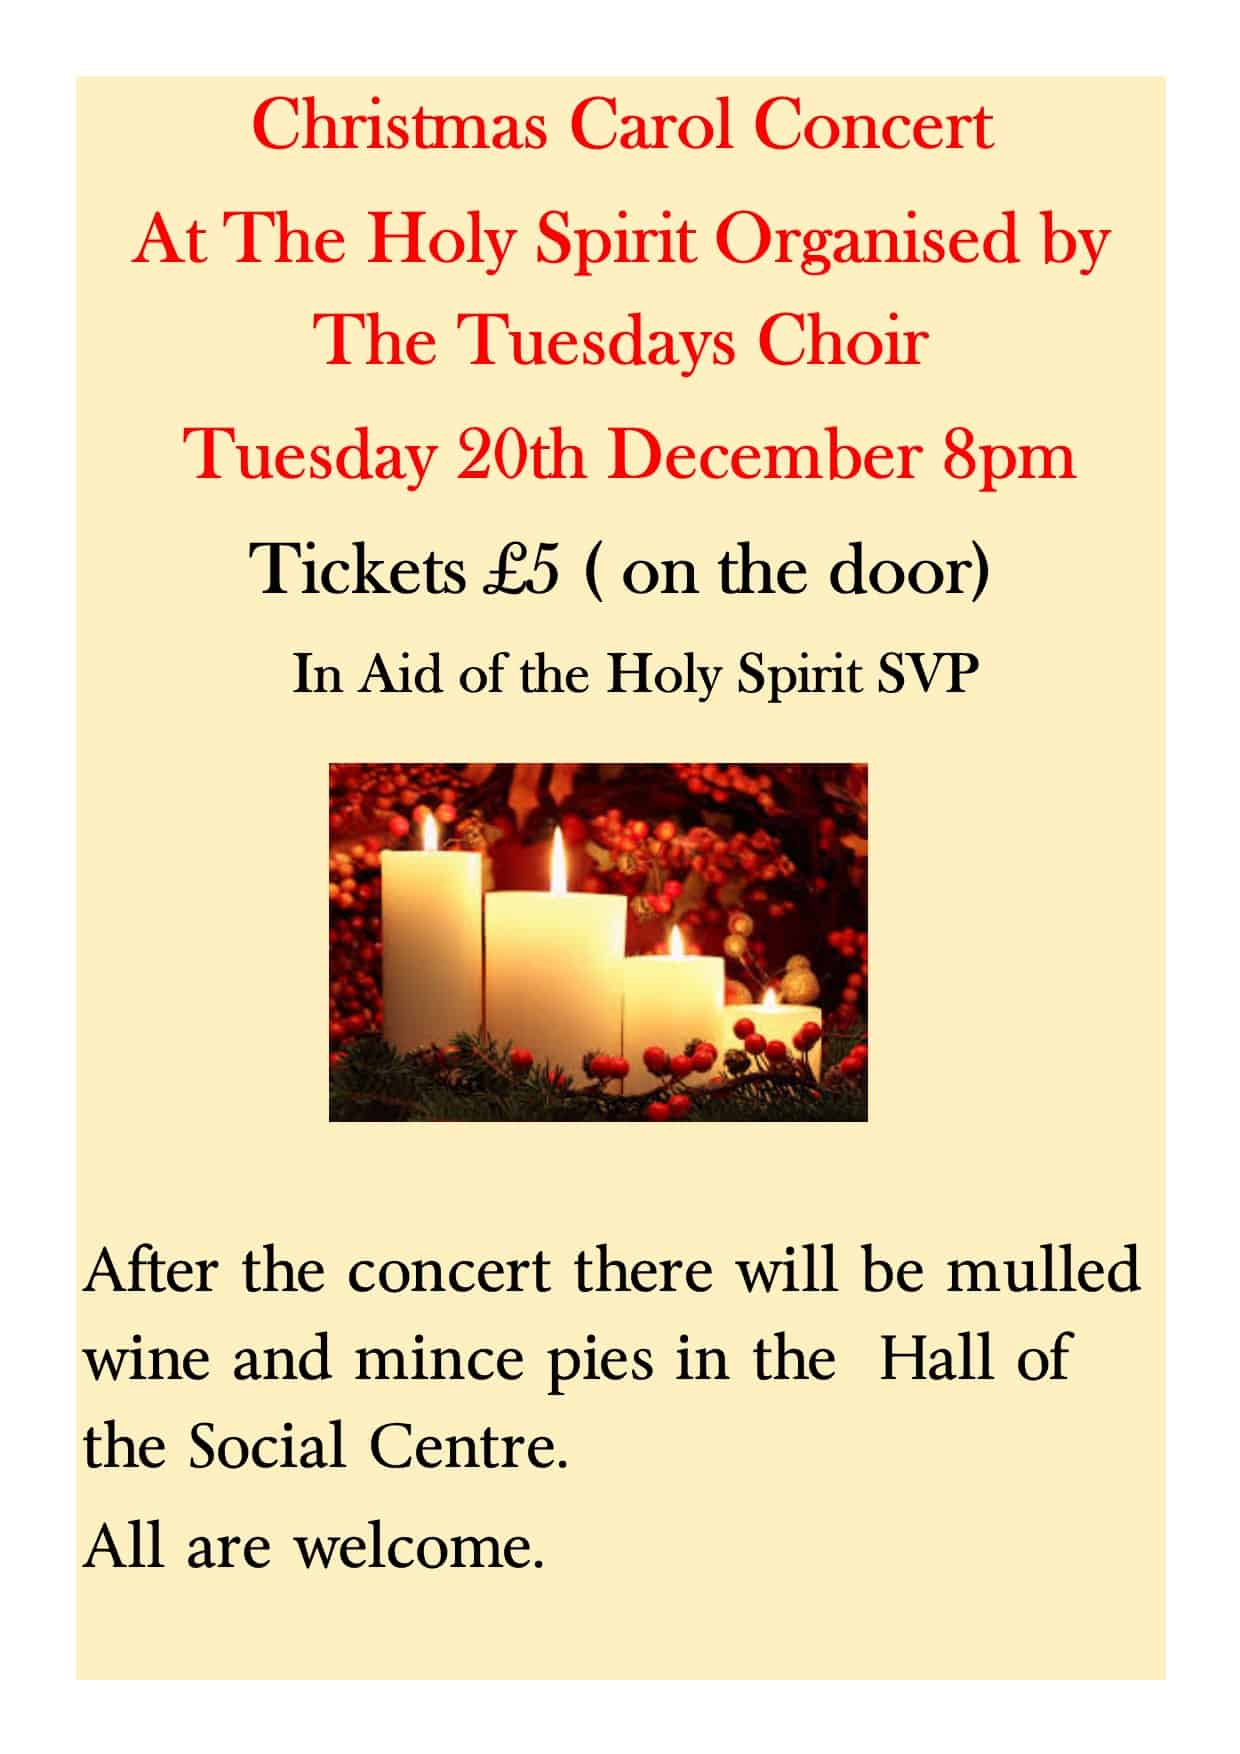 tuesdays-christmas-concert-poster-2016